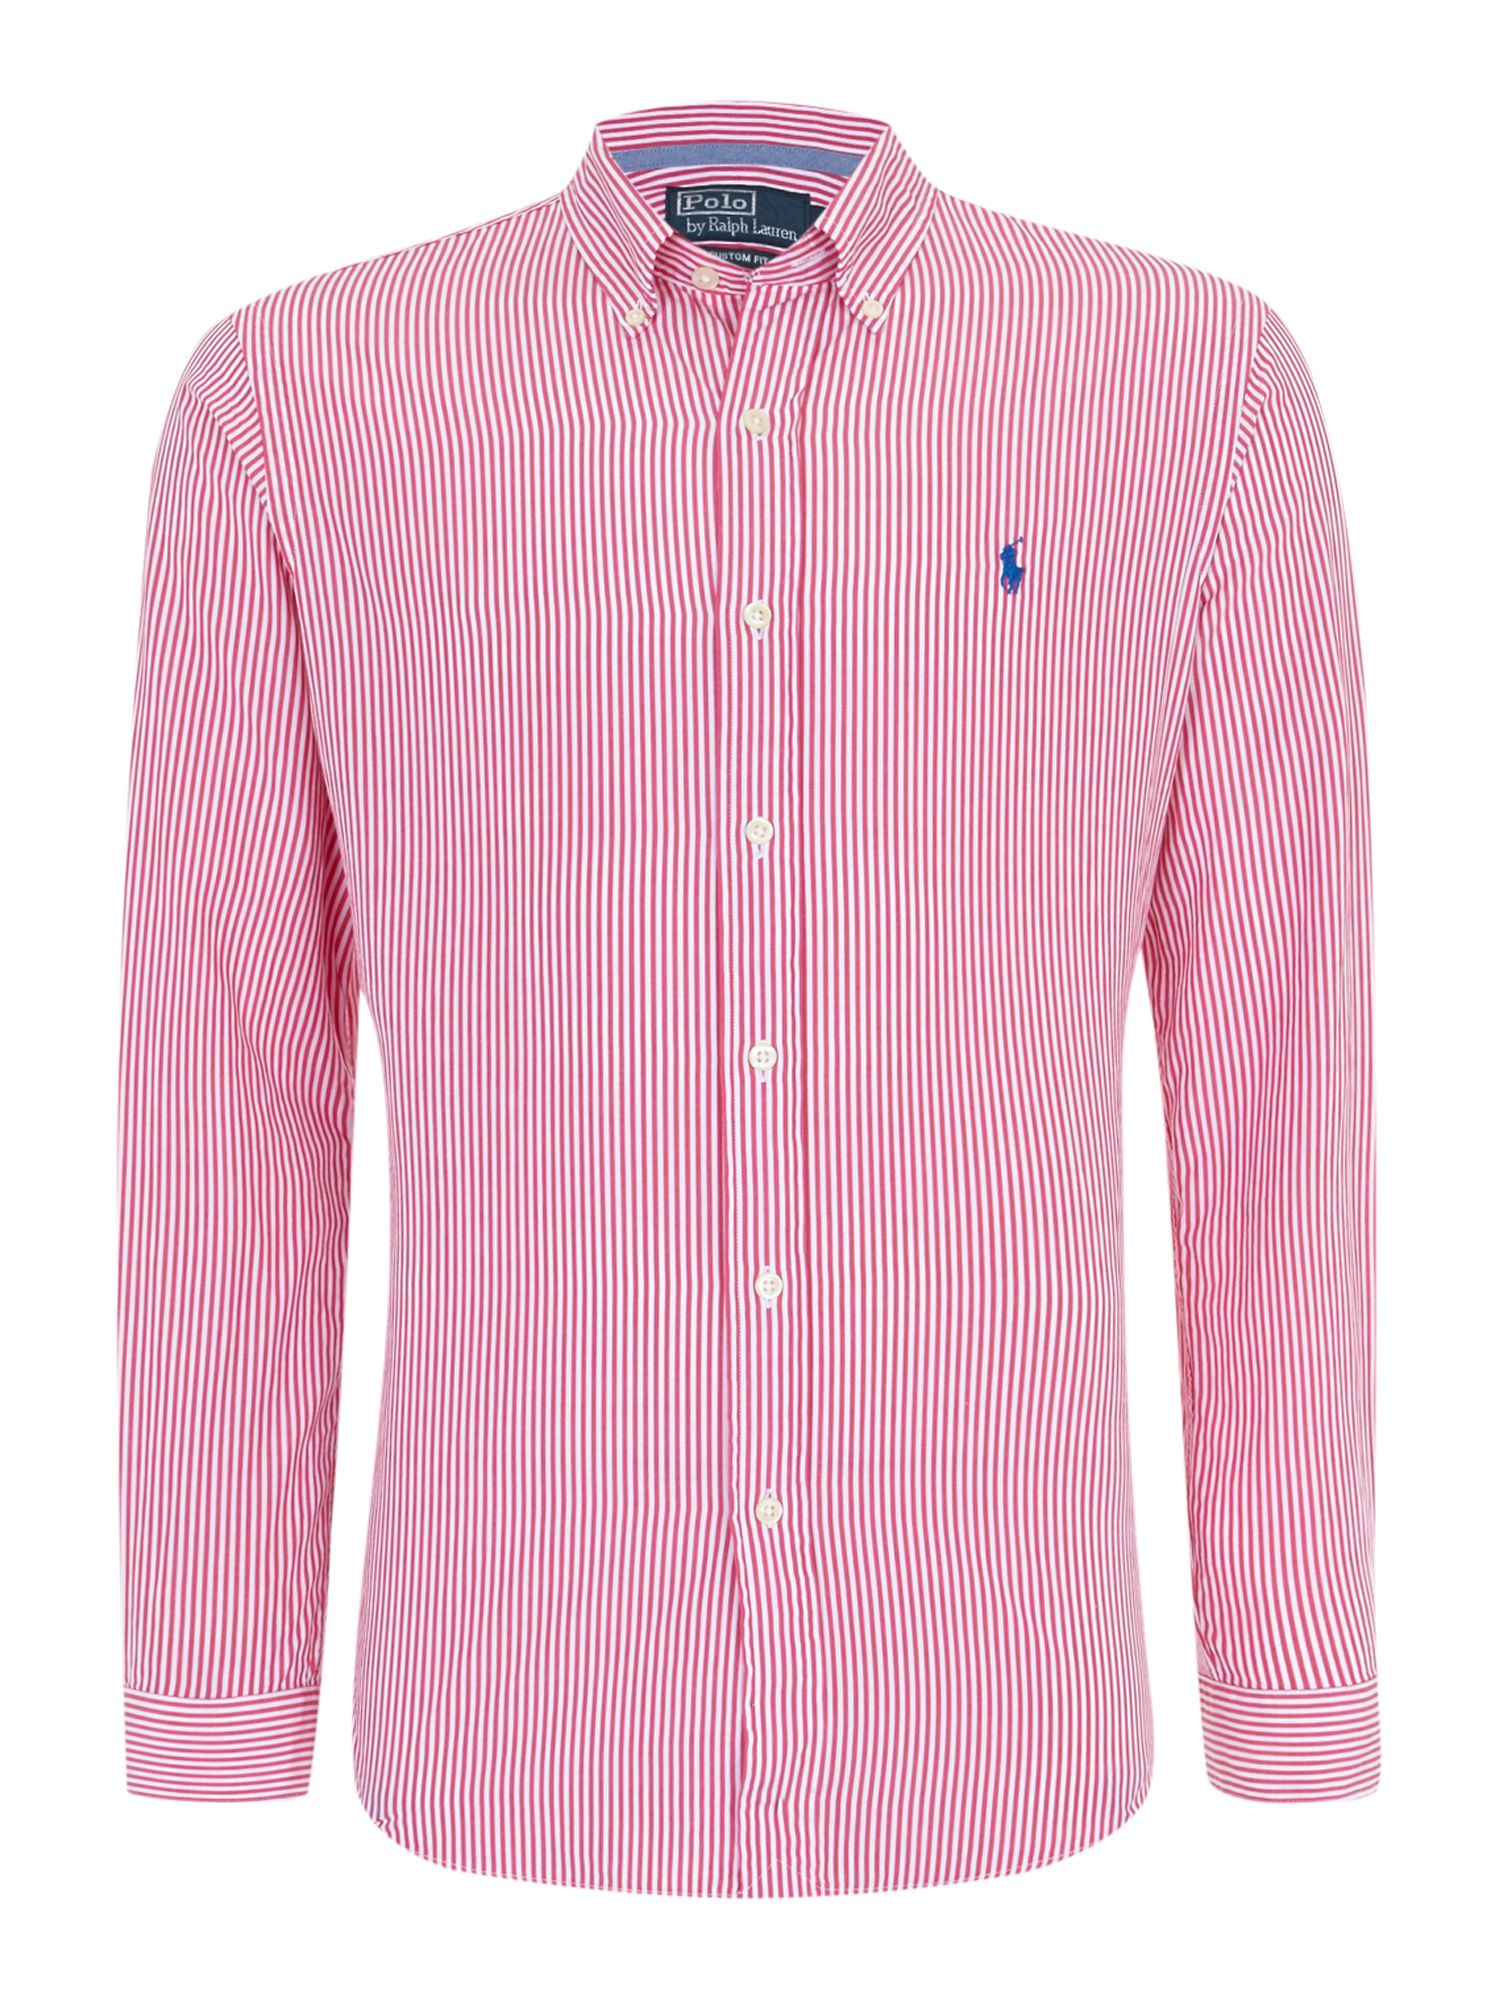 Classic long sleeve fine stripe custom fit shirt